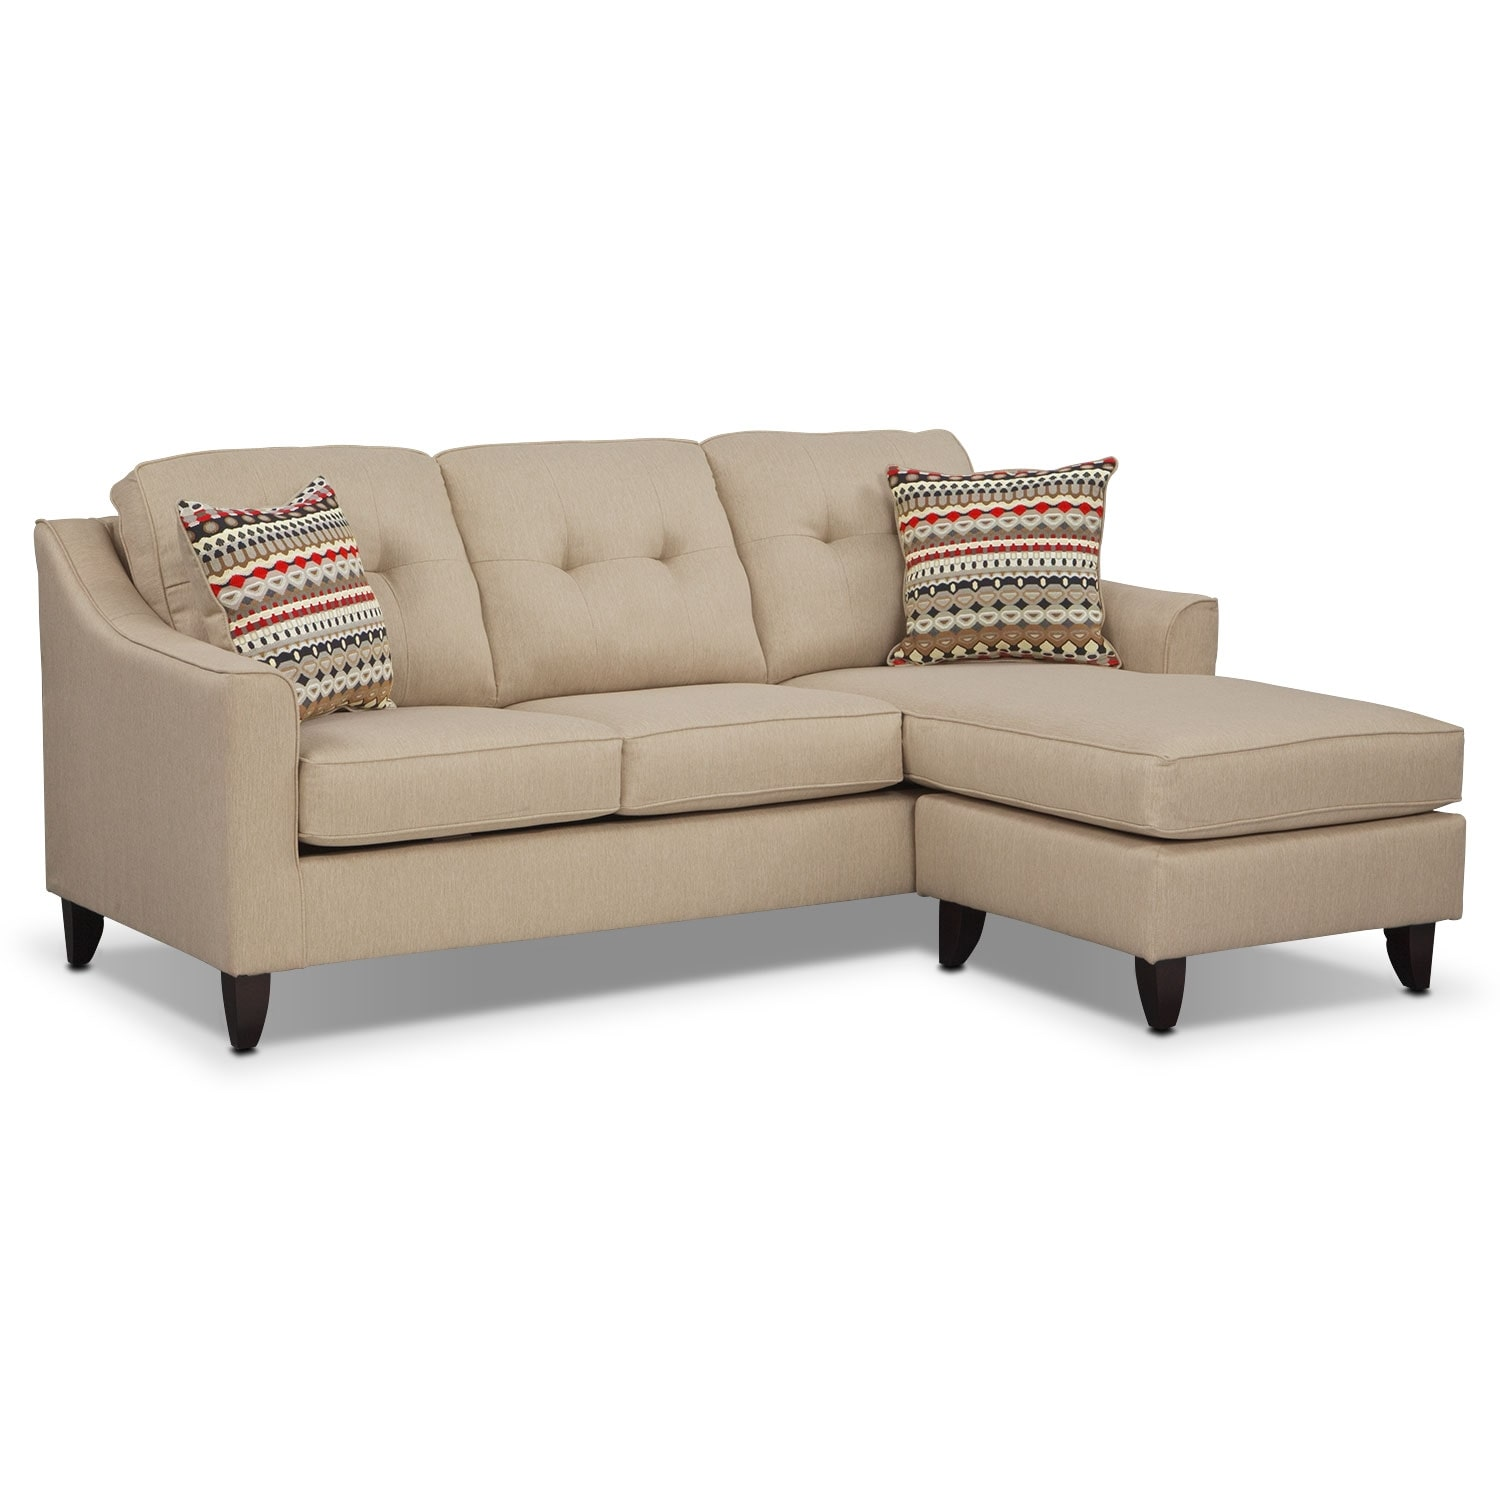 value city furniture marco chaise sofa bed minneapolis cream